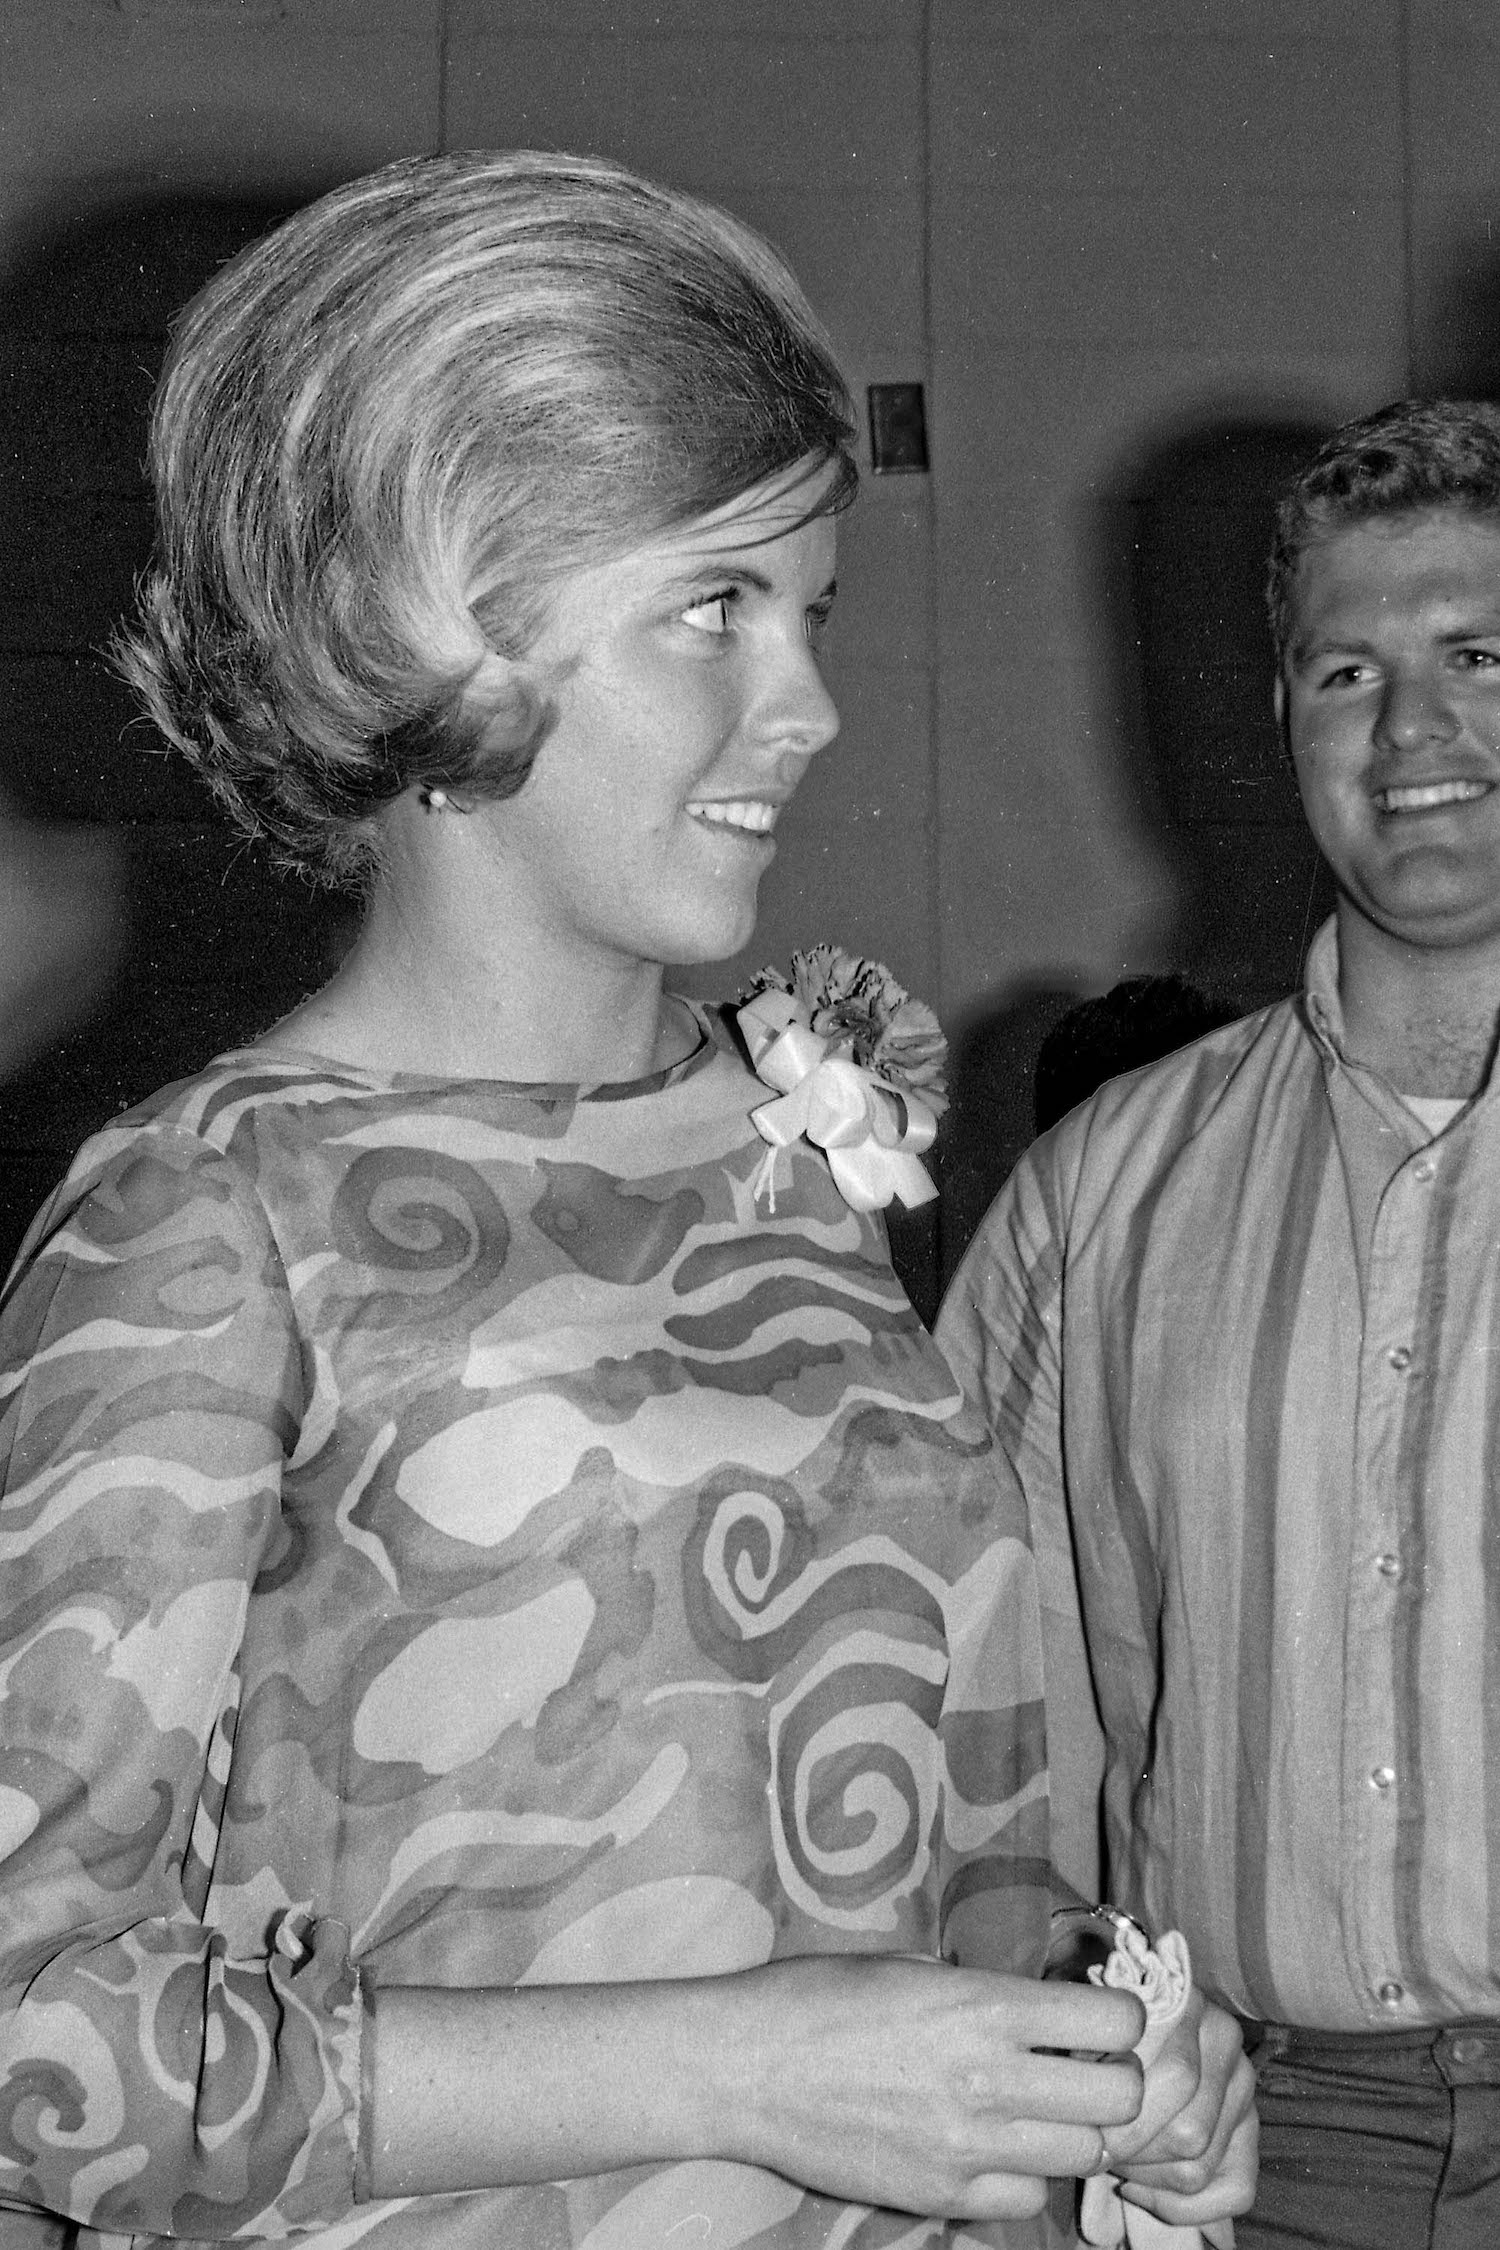 Spring 1965--At a social mixer, Fresno State College